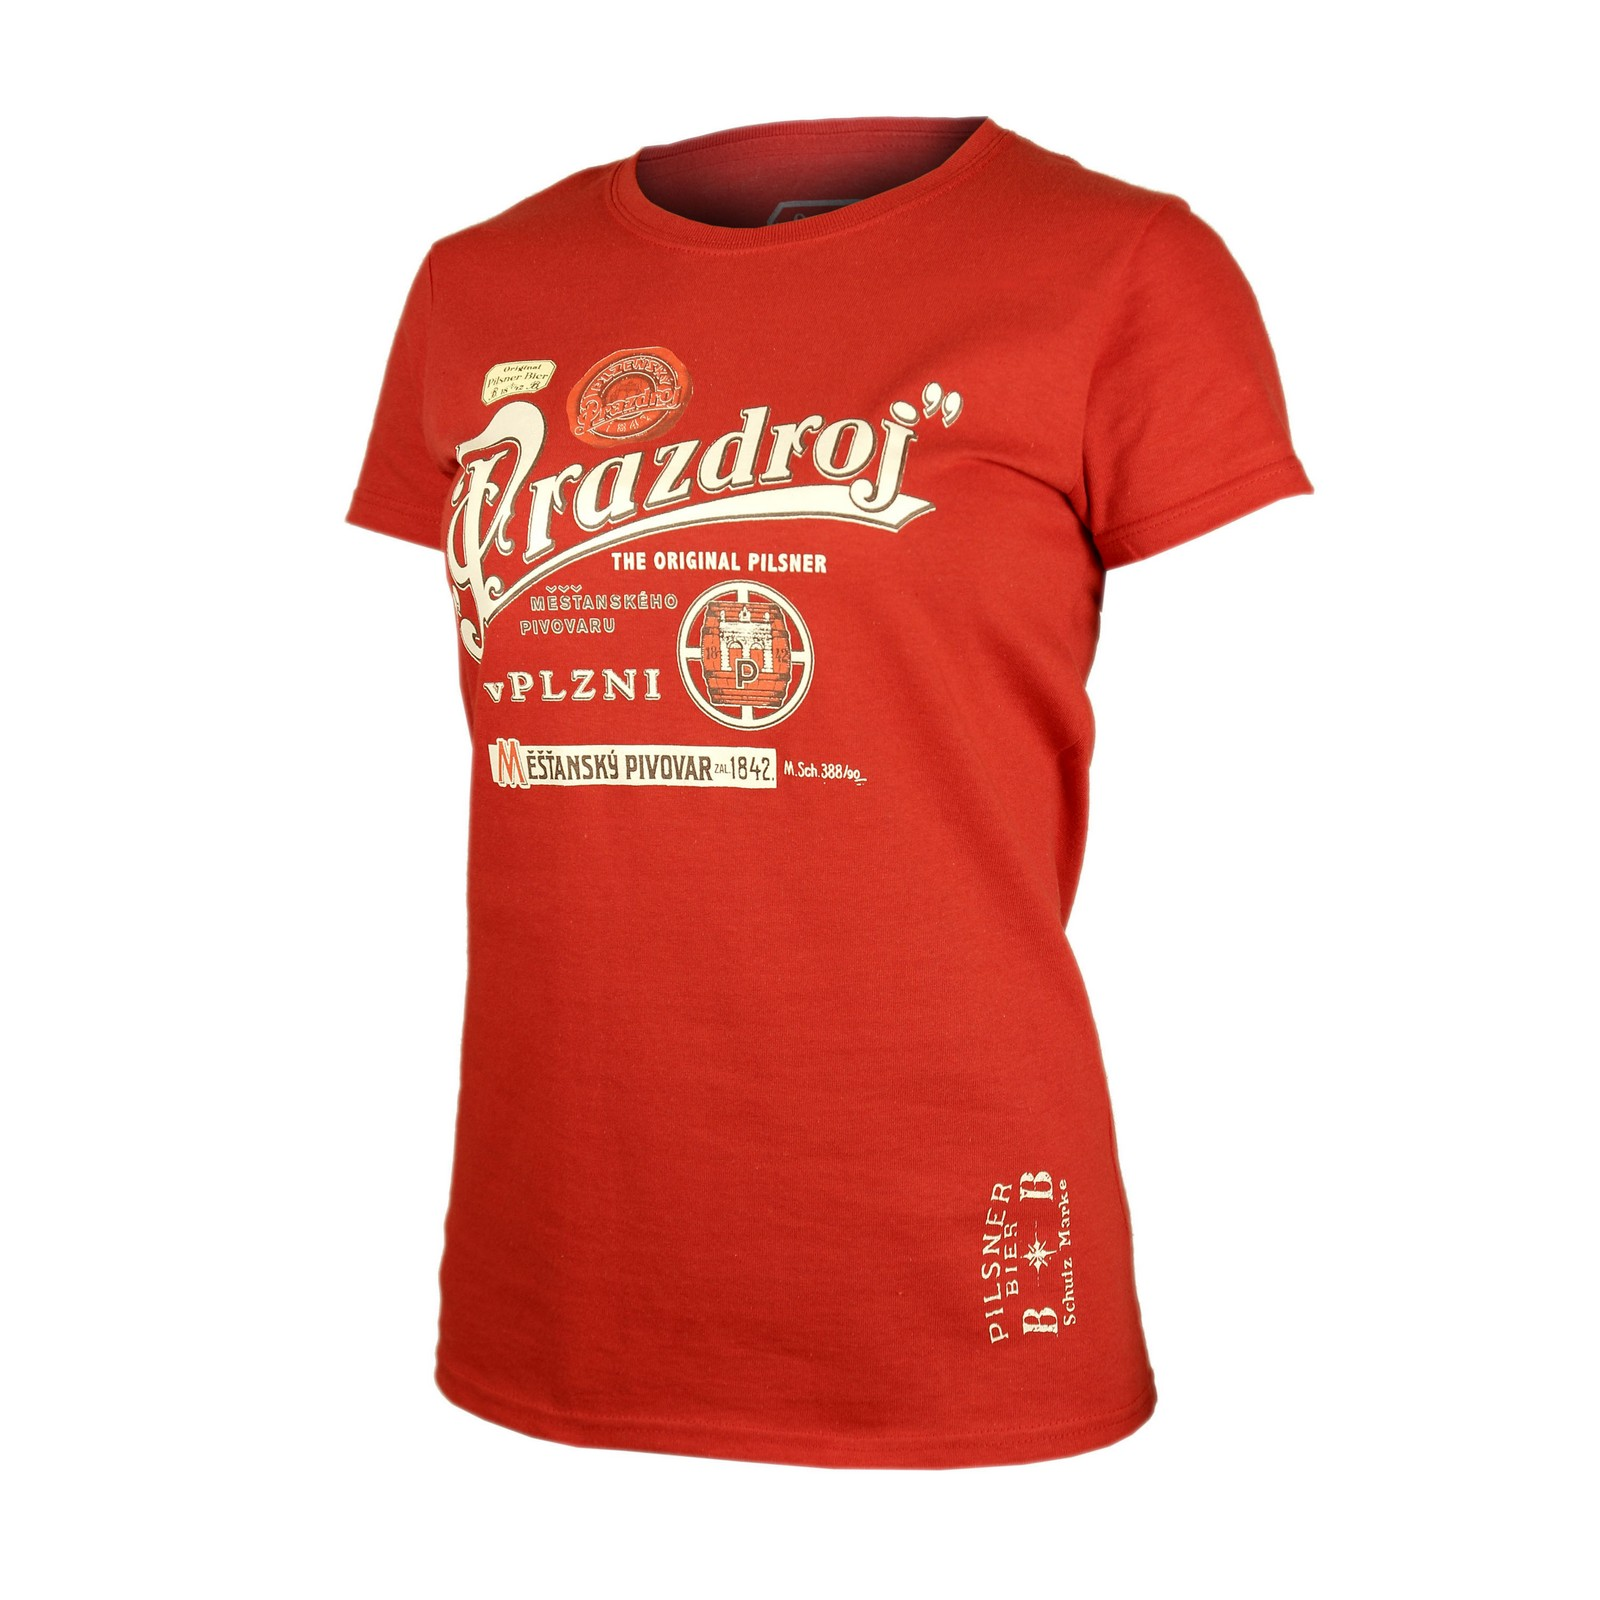 Ladies T-shirt Pilsner Urquell red barrel with embroidery